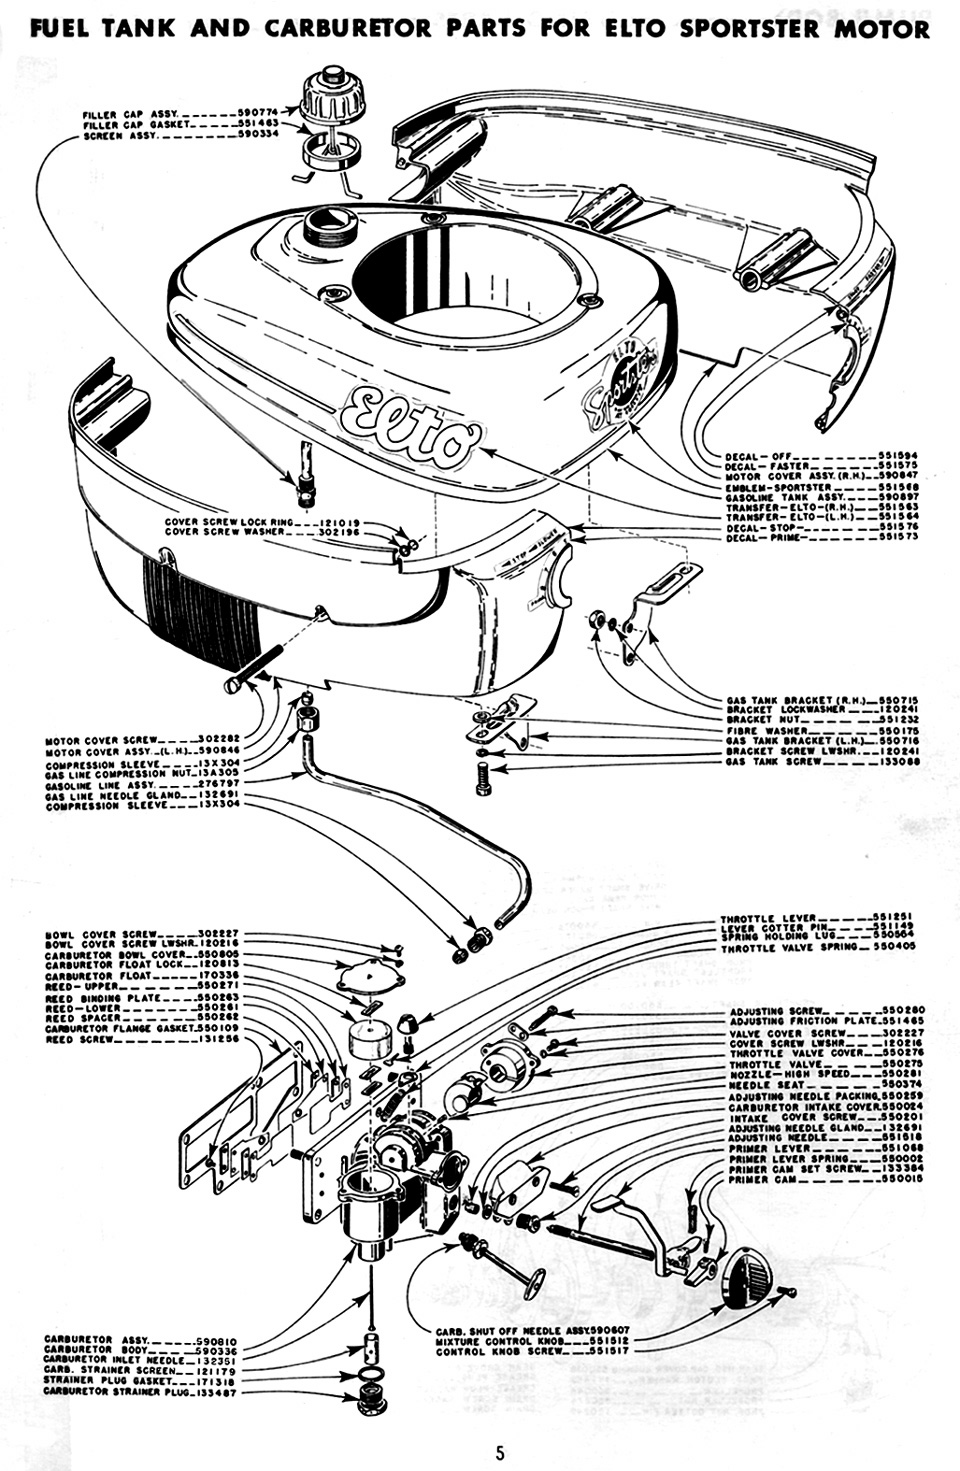 Wiring Diagram Honda Elite 50 Engine And Ch 80 Ch80 Scooter Further How To Tighten Drive Belt On Husqvarna Riding Mower